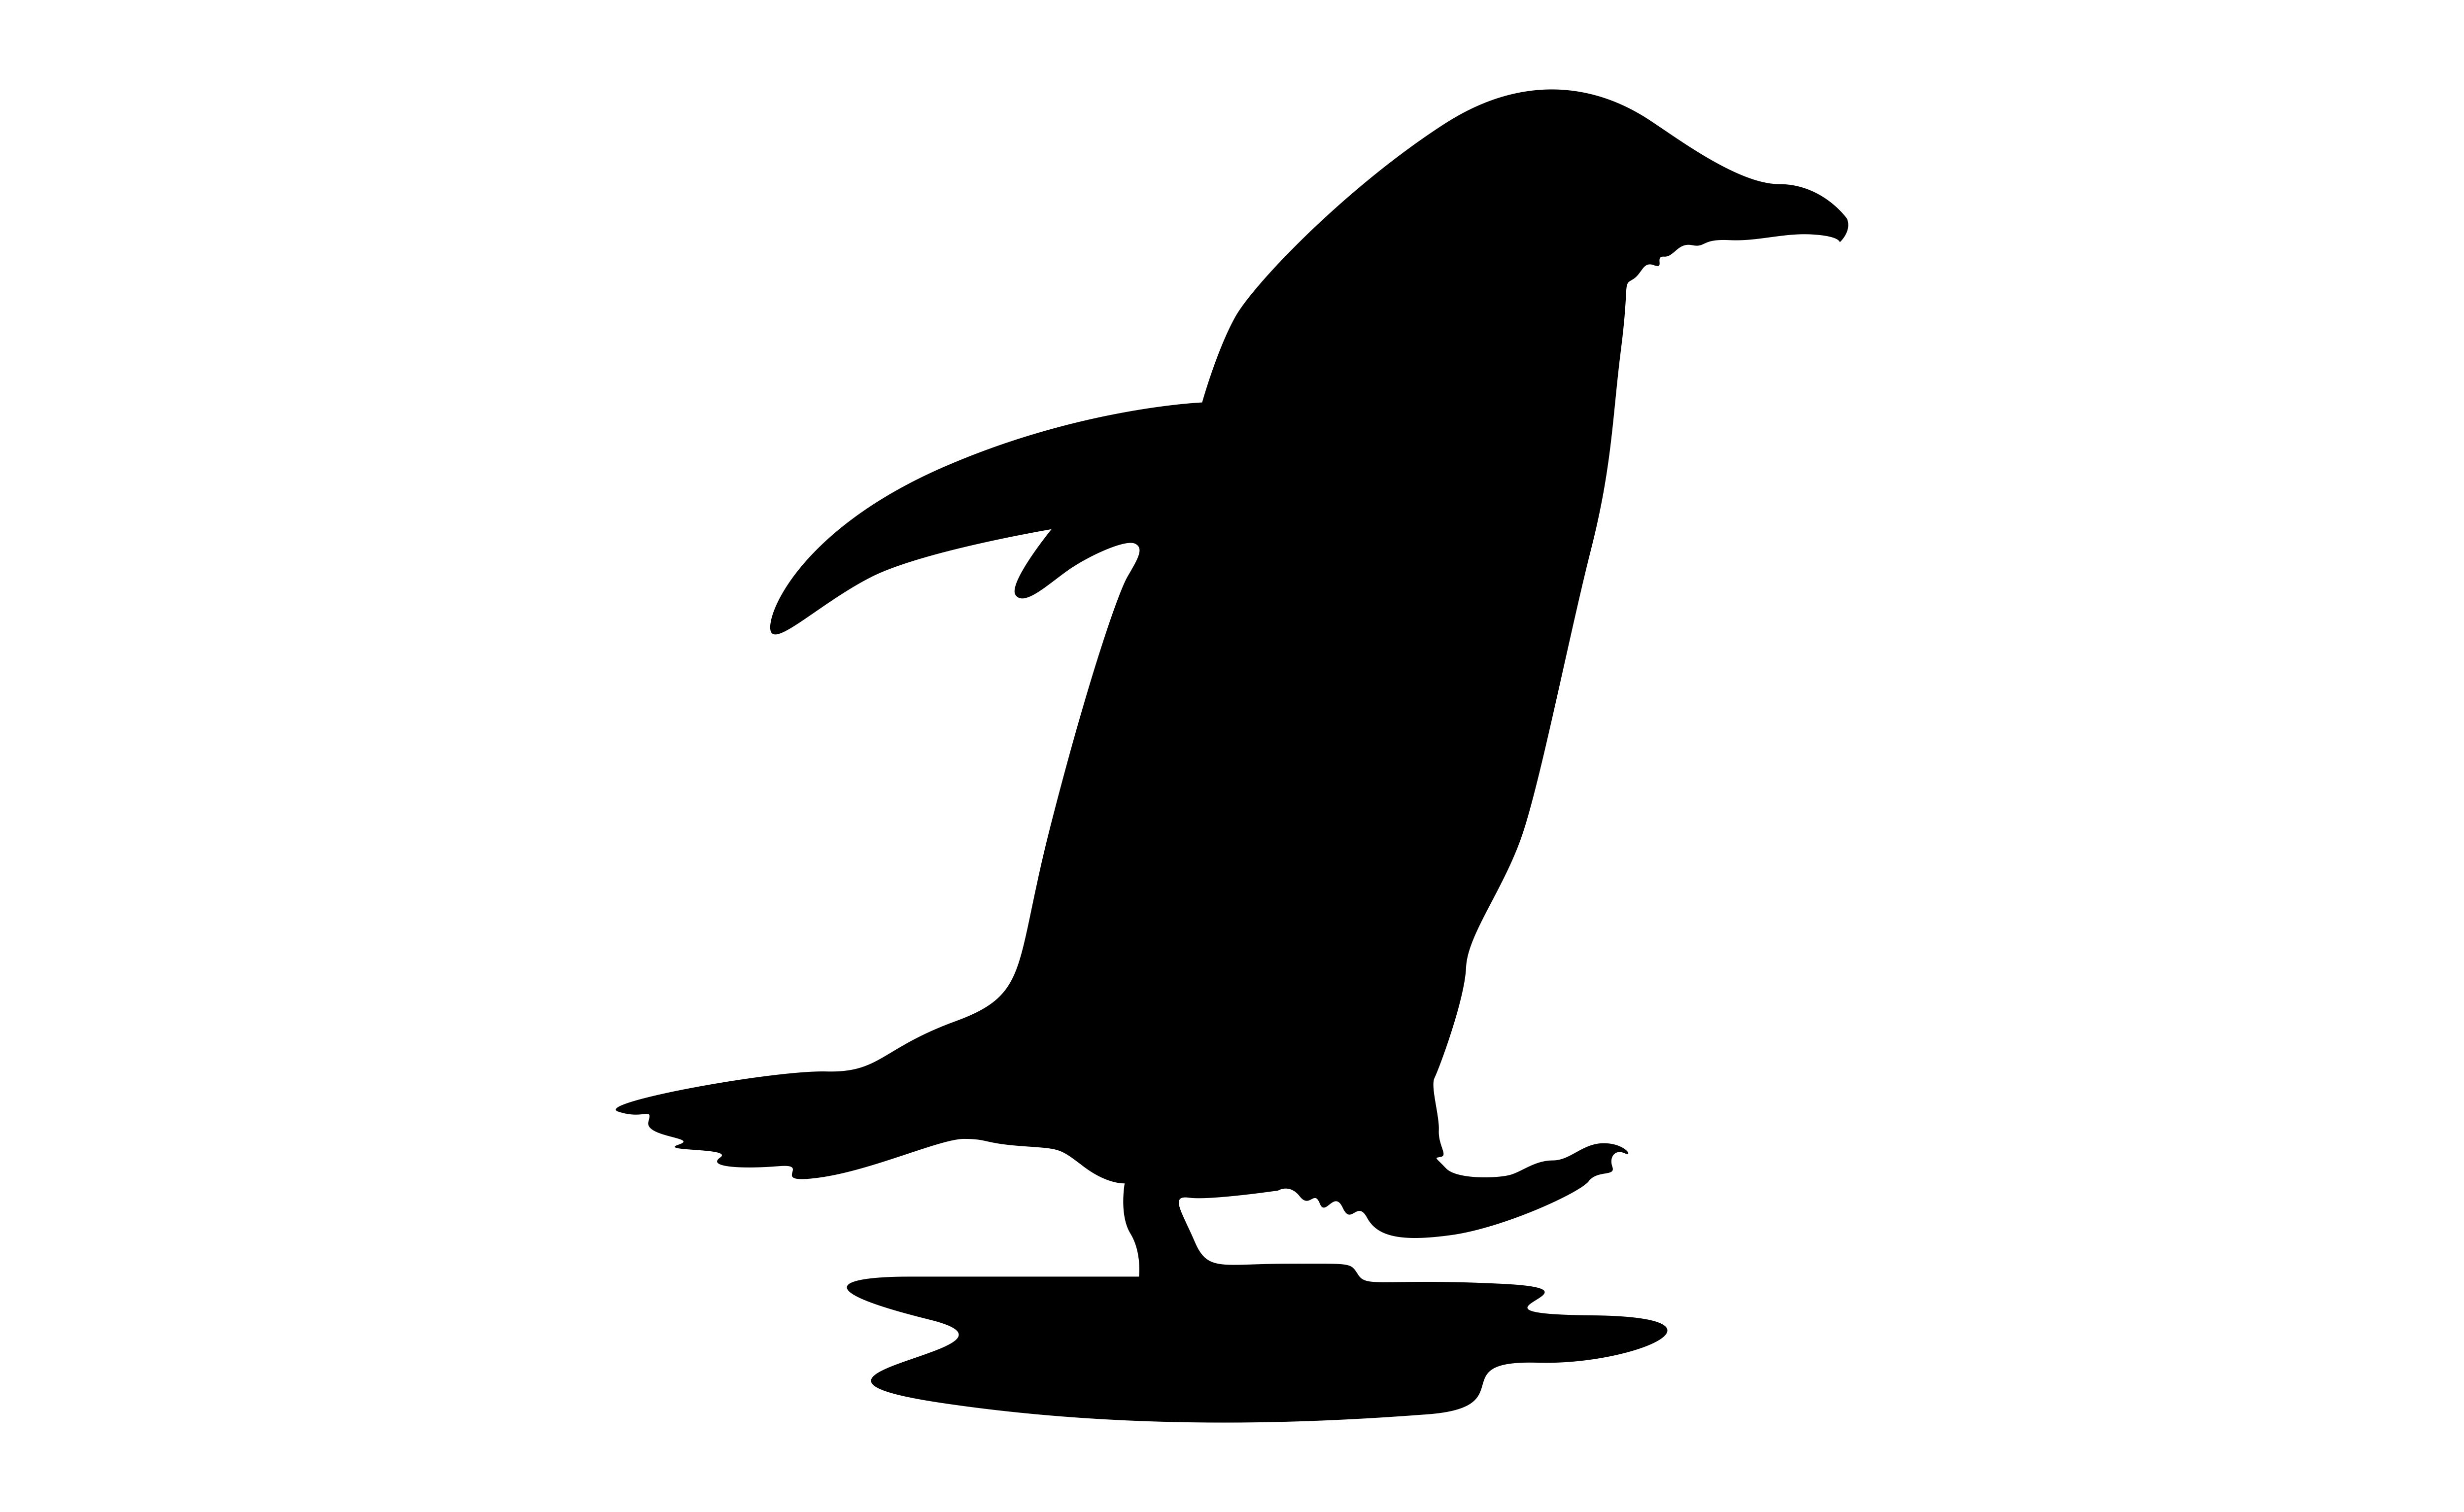 Download Free Penguin With Silhouette Style Graphic By Arief Sapta Adjie for Cricut Explore, Silhouette and other cutting machines.